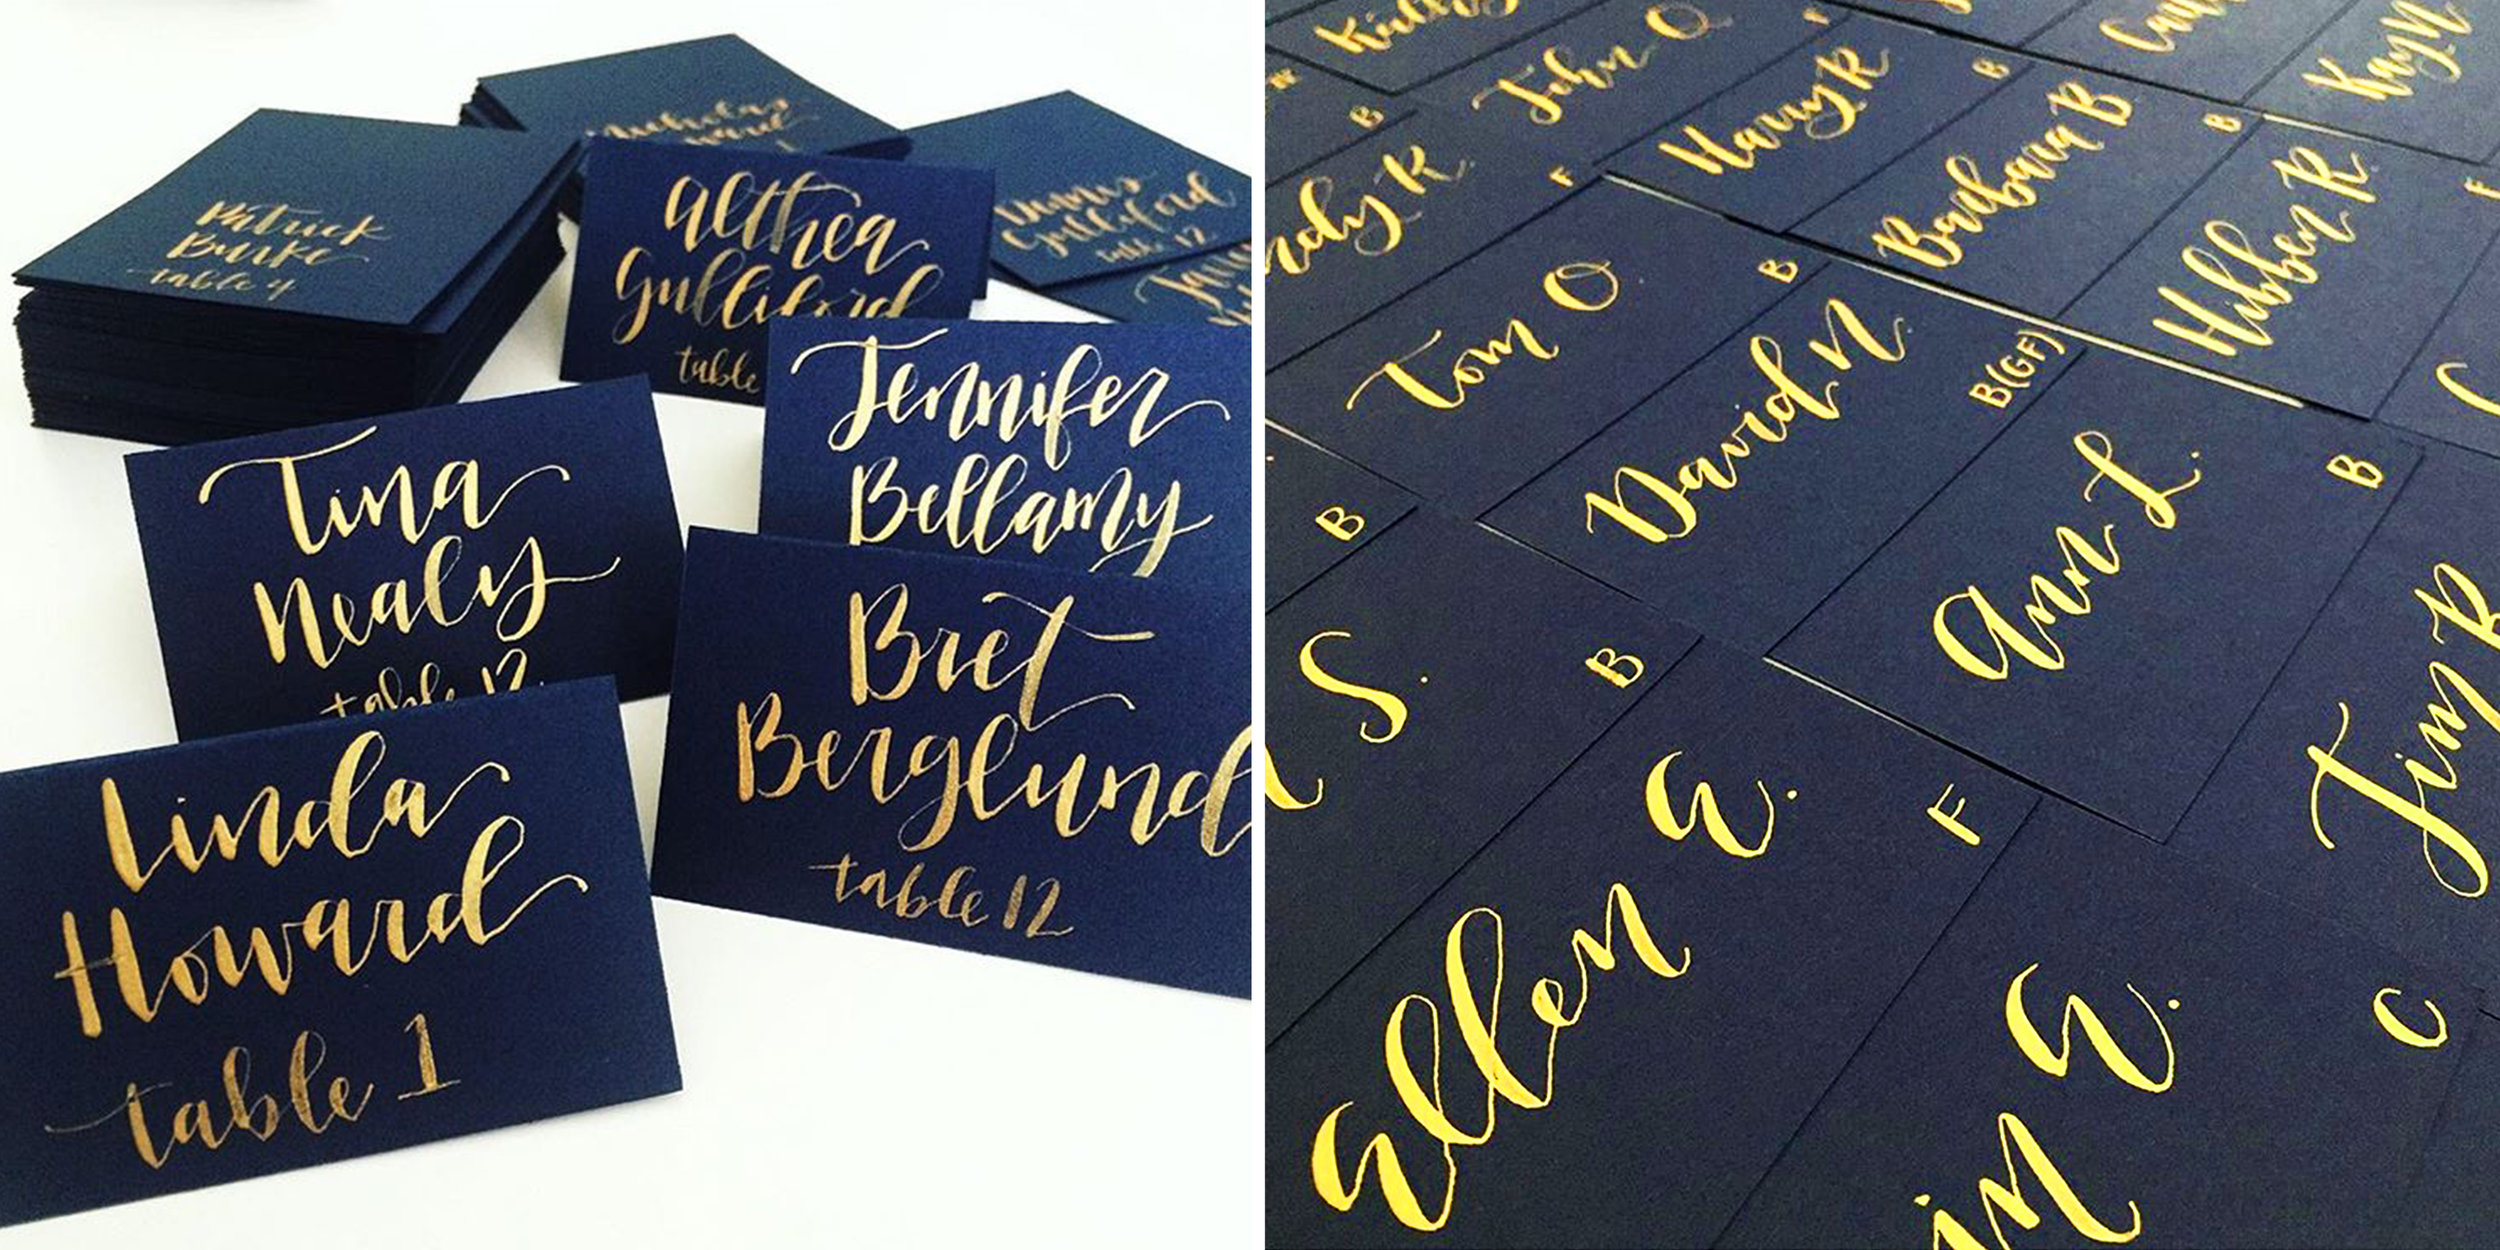 Simple navy place cards with gold calligraphy for the guests and table numbers